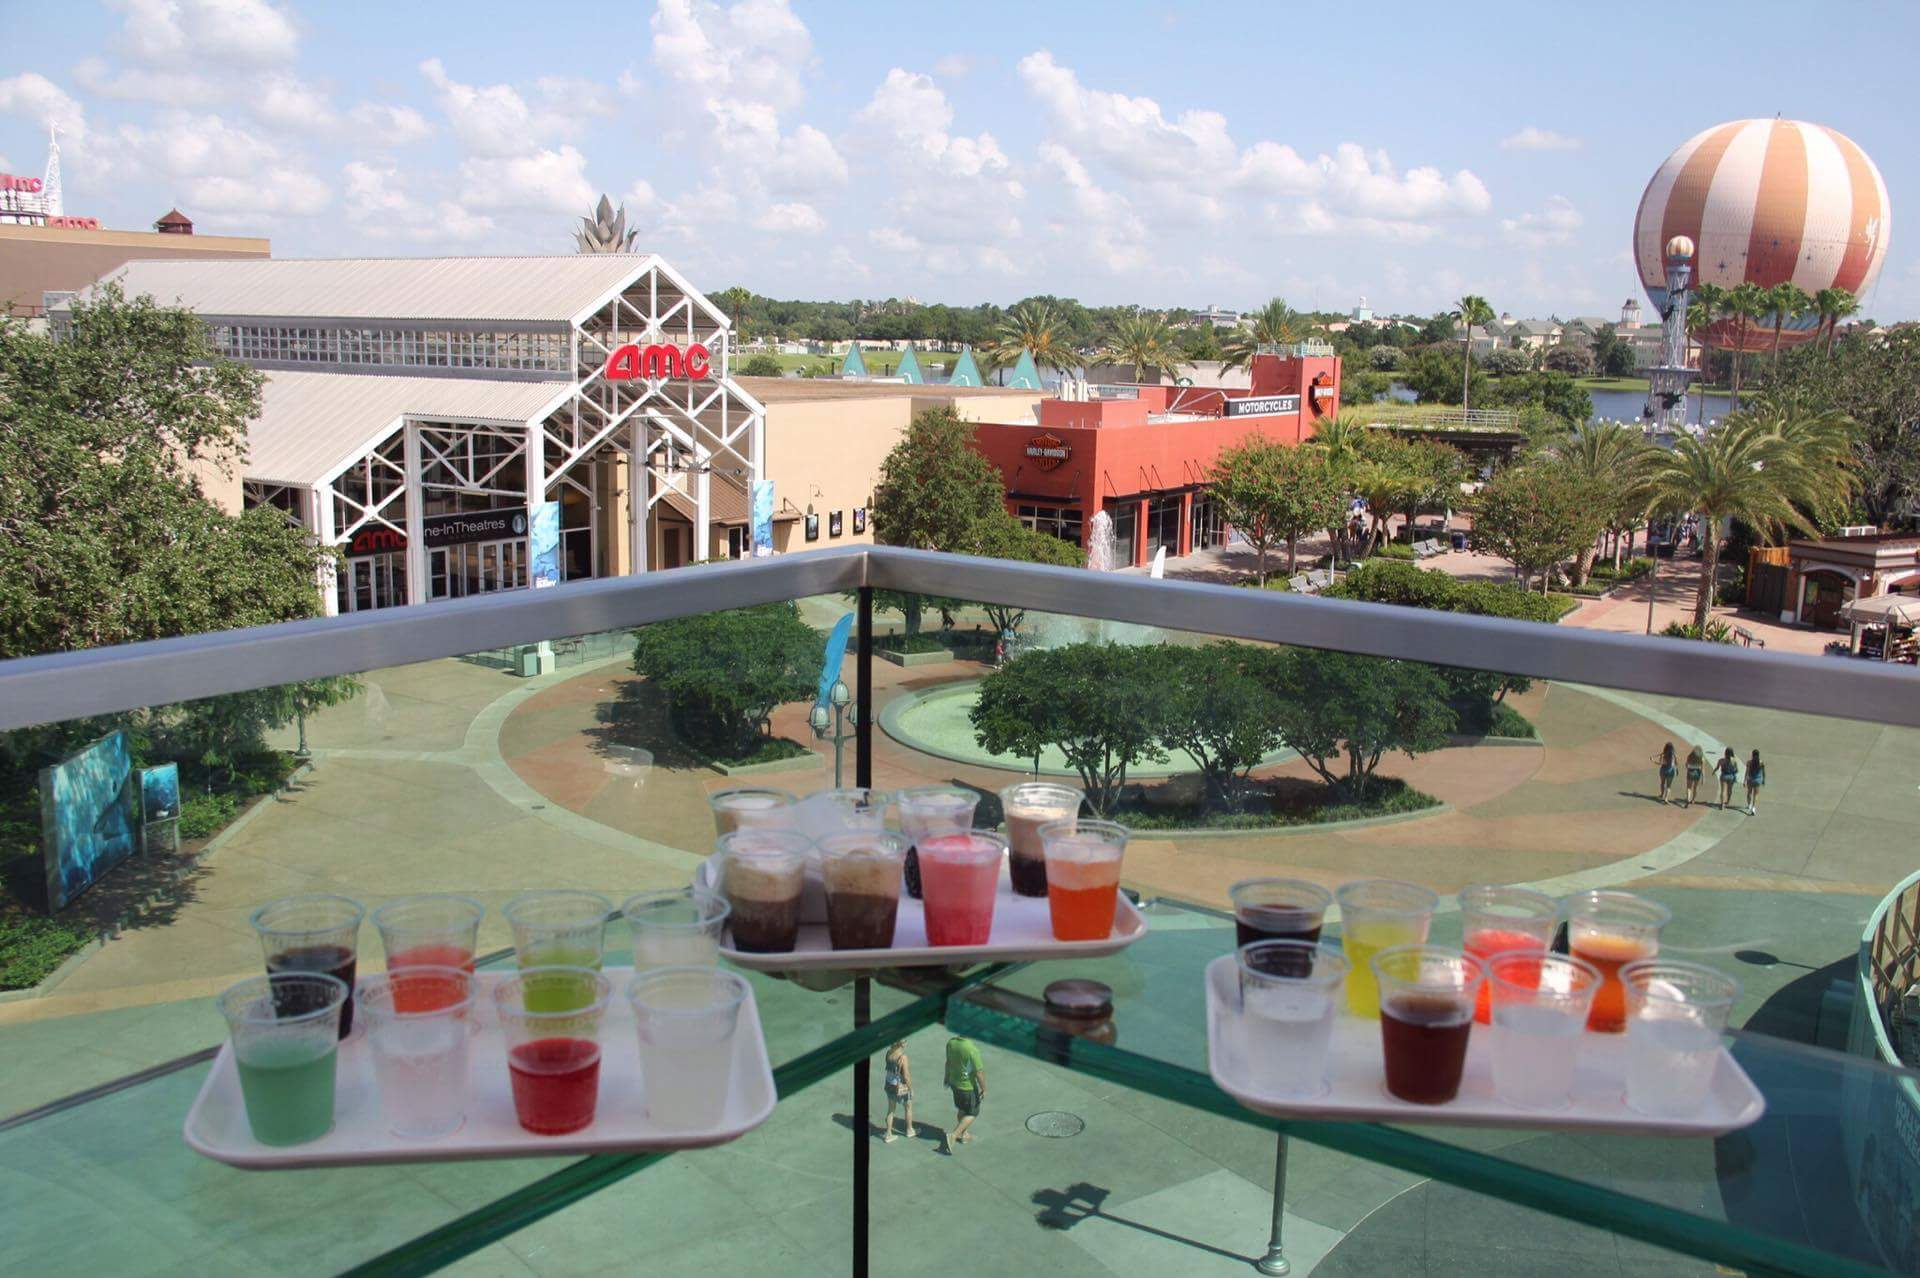 View from the rooftop bar at Coca-Cola Store during the daytime. On table at the rooftop bar features an array of drinks from the sampling special.